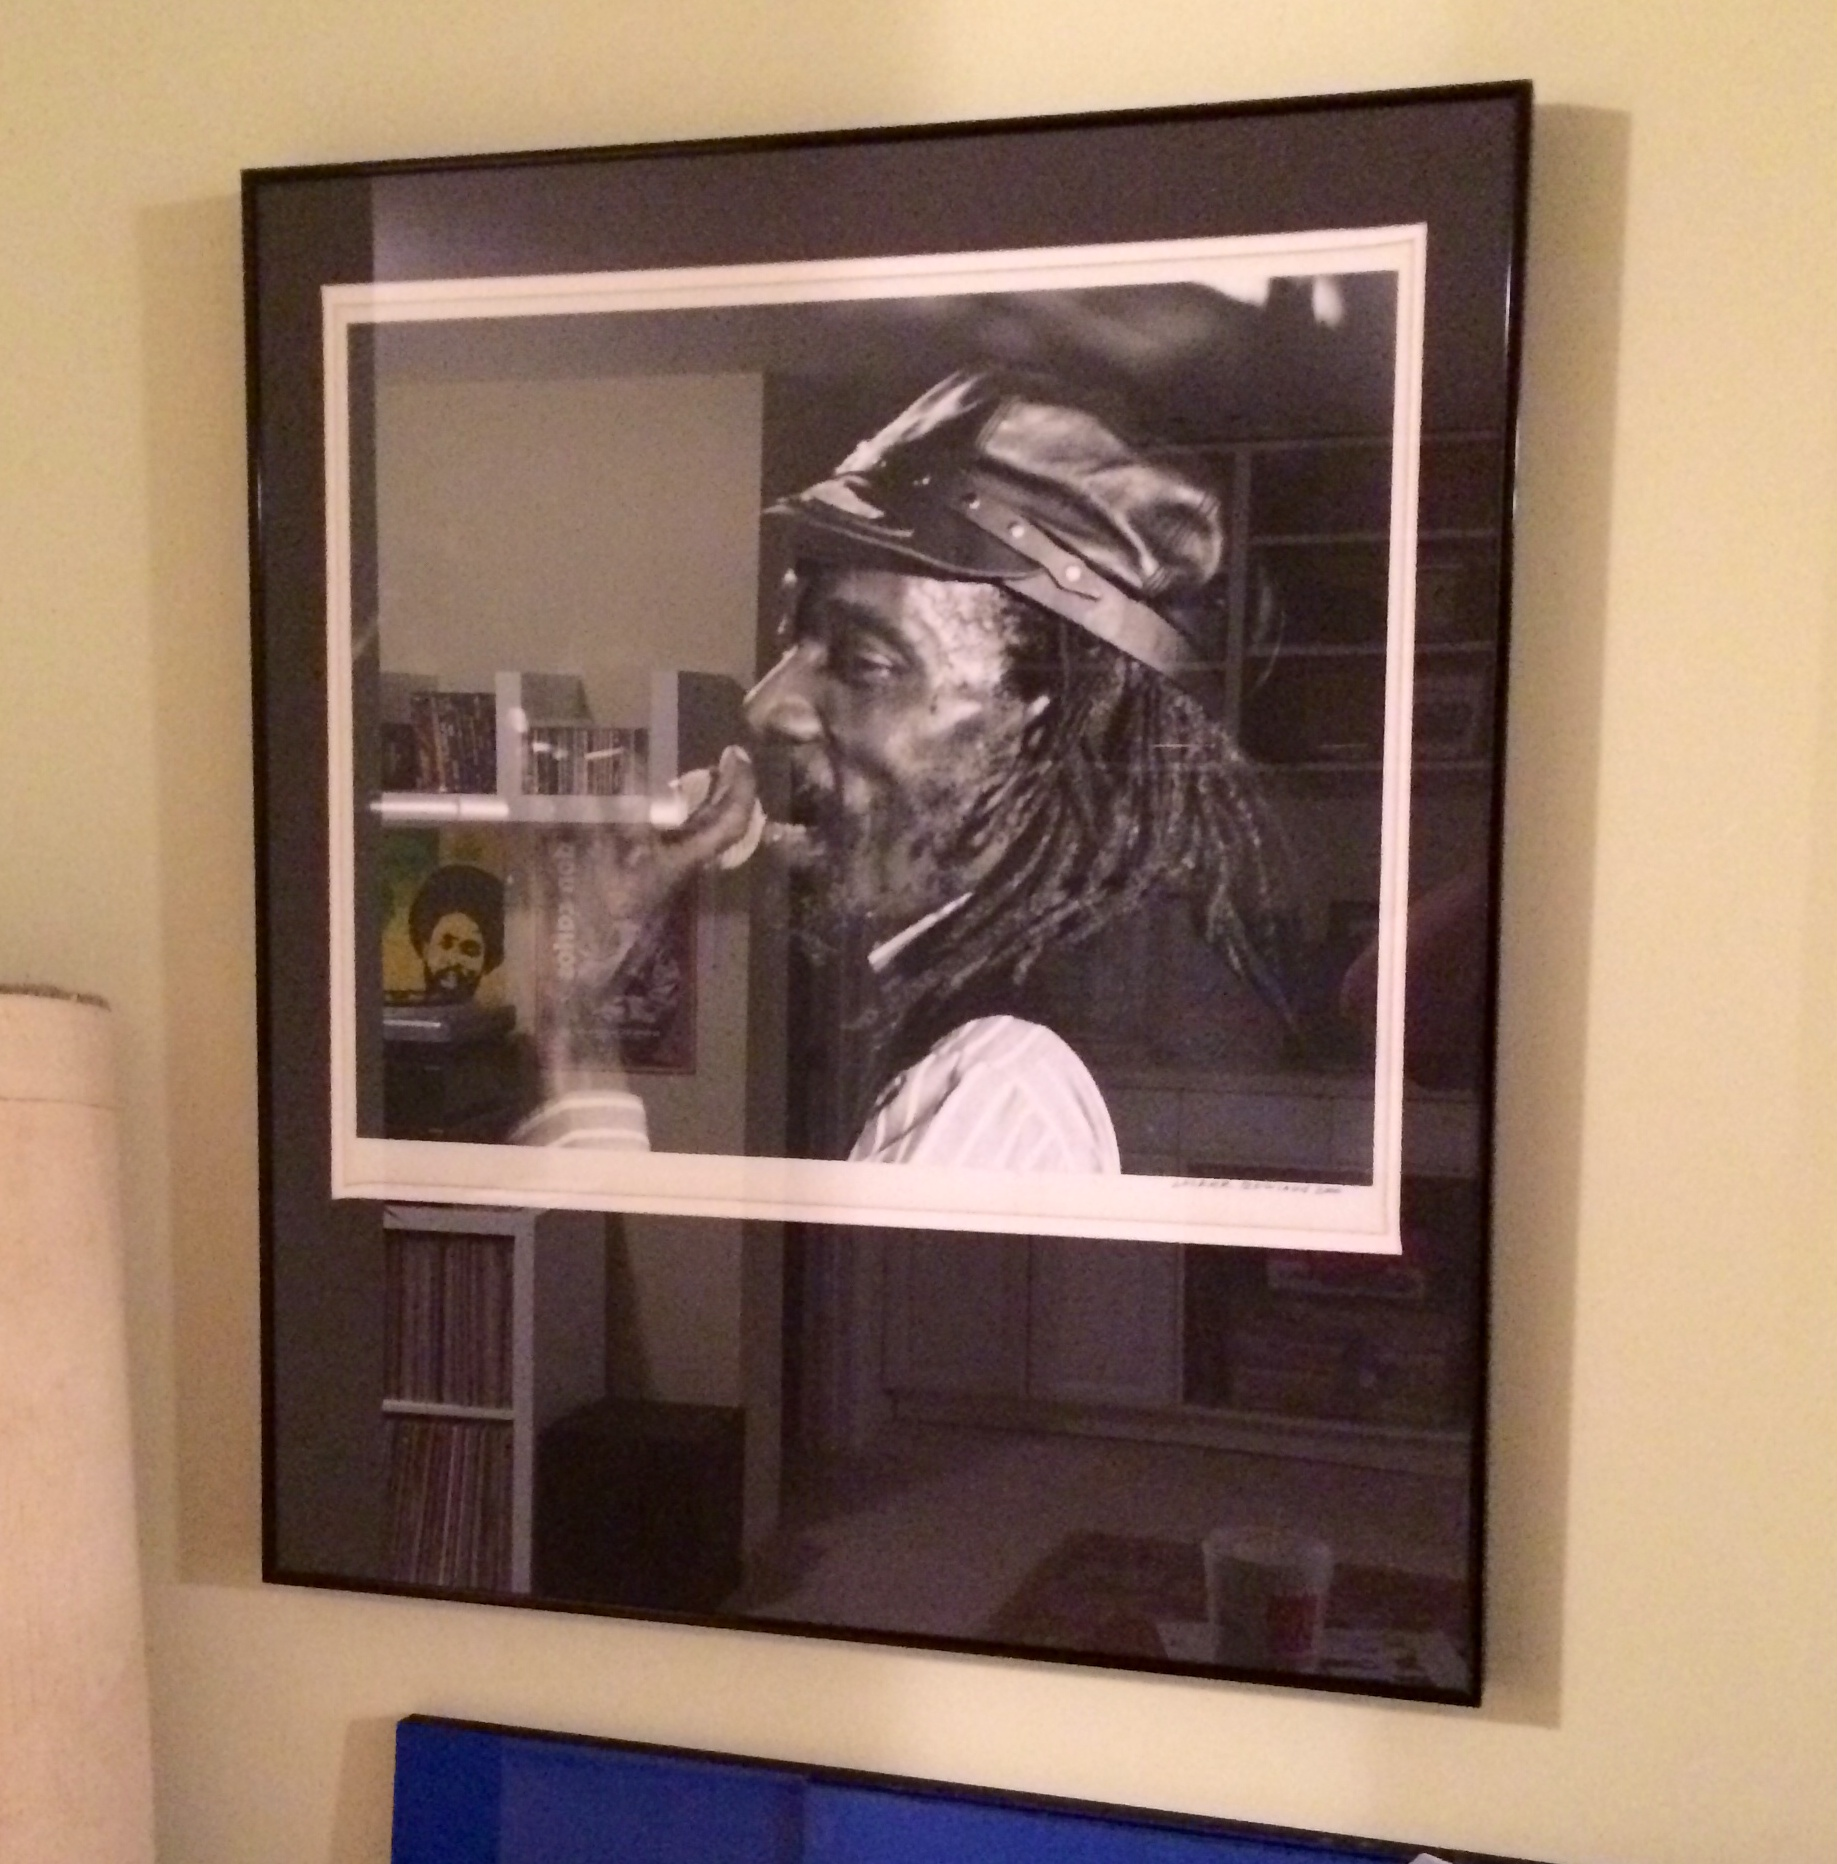 One of two framed portraits on display in the bass-ment. A gift from Doctor Dread. The other is a portrait of Bunny Wailer.